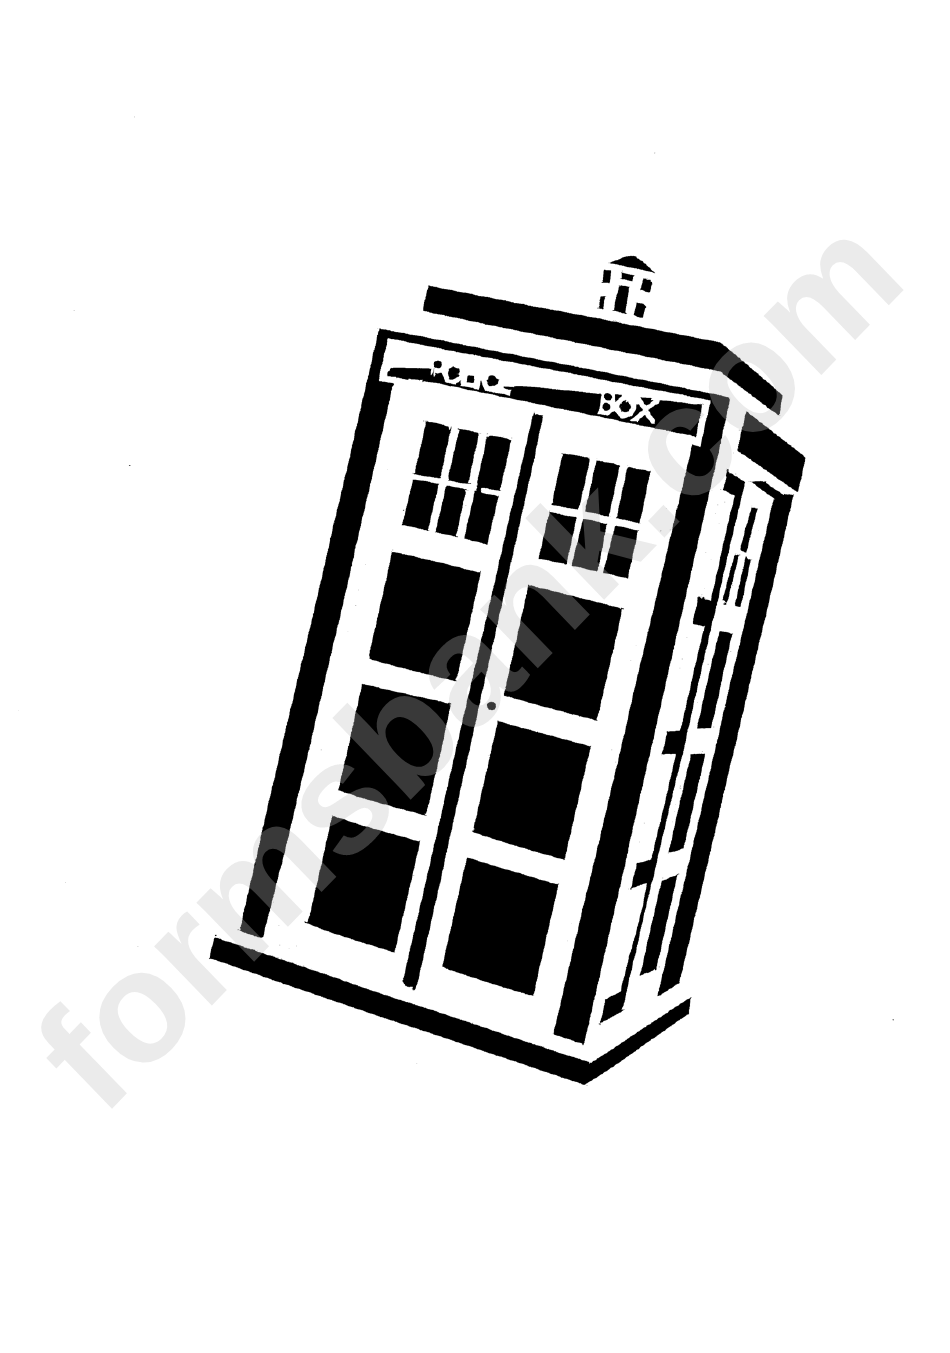 Tardis Cake Template printable pdf download